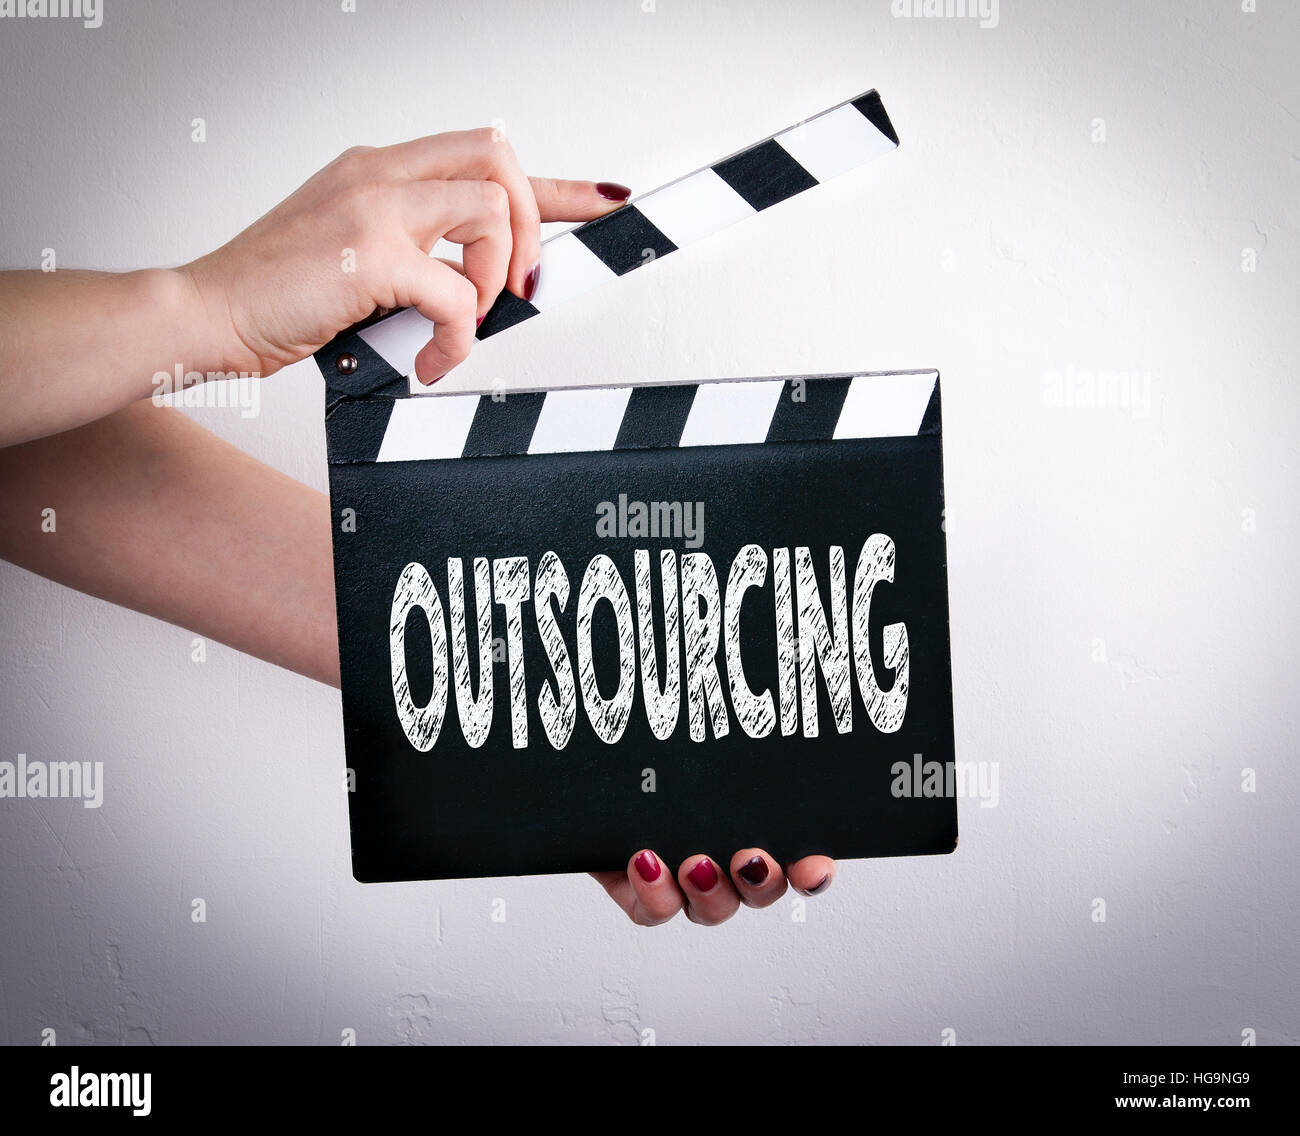 Outsourcing. Female hands holding movie clapper - Stock Image